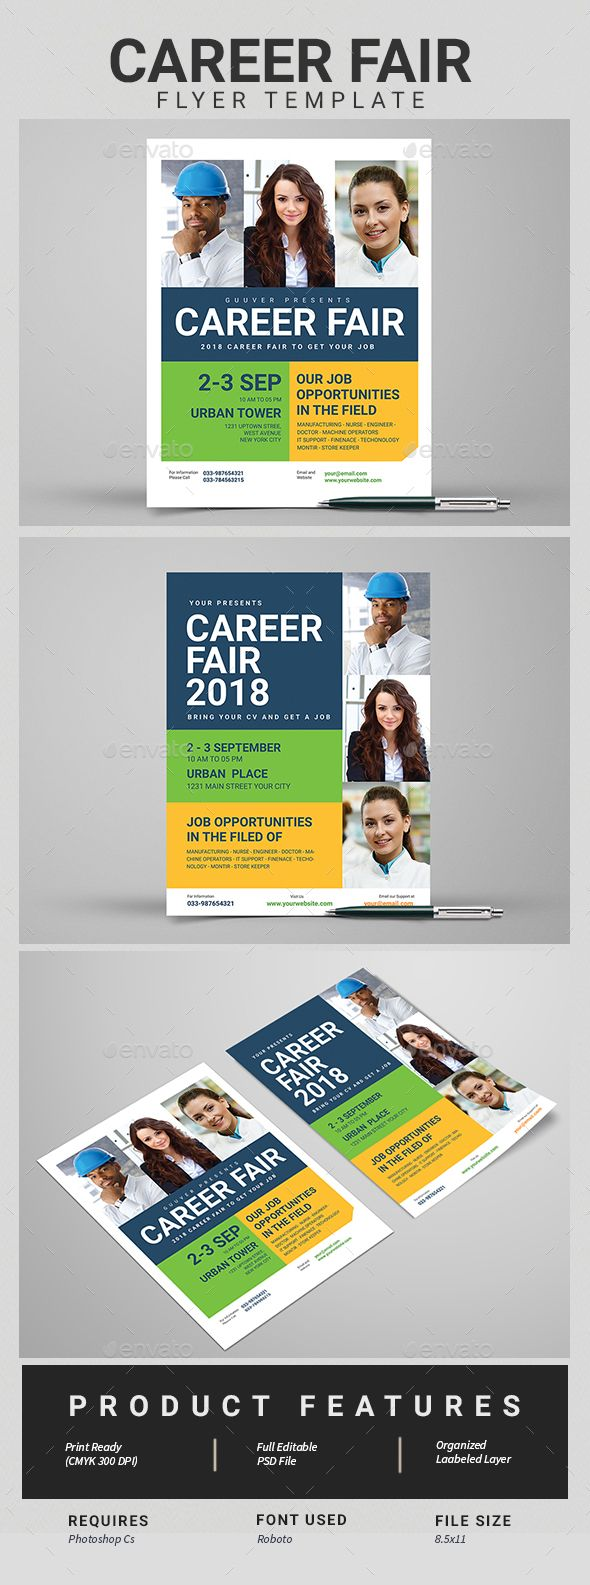 best images about graphics campus map flyer career fair flyer